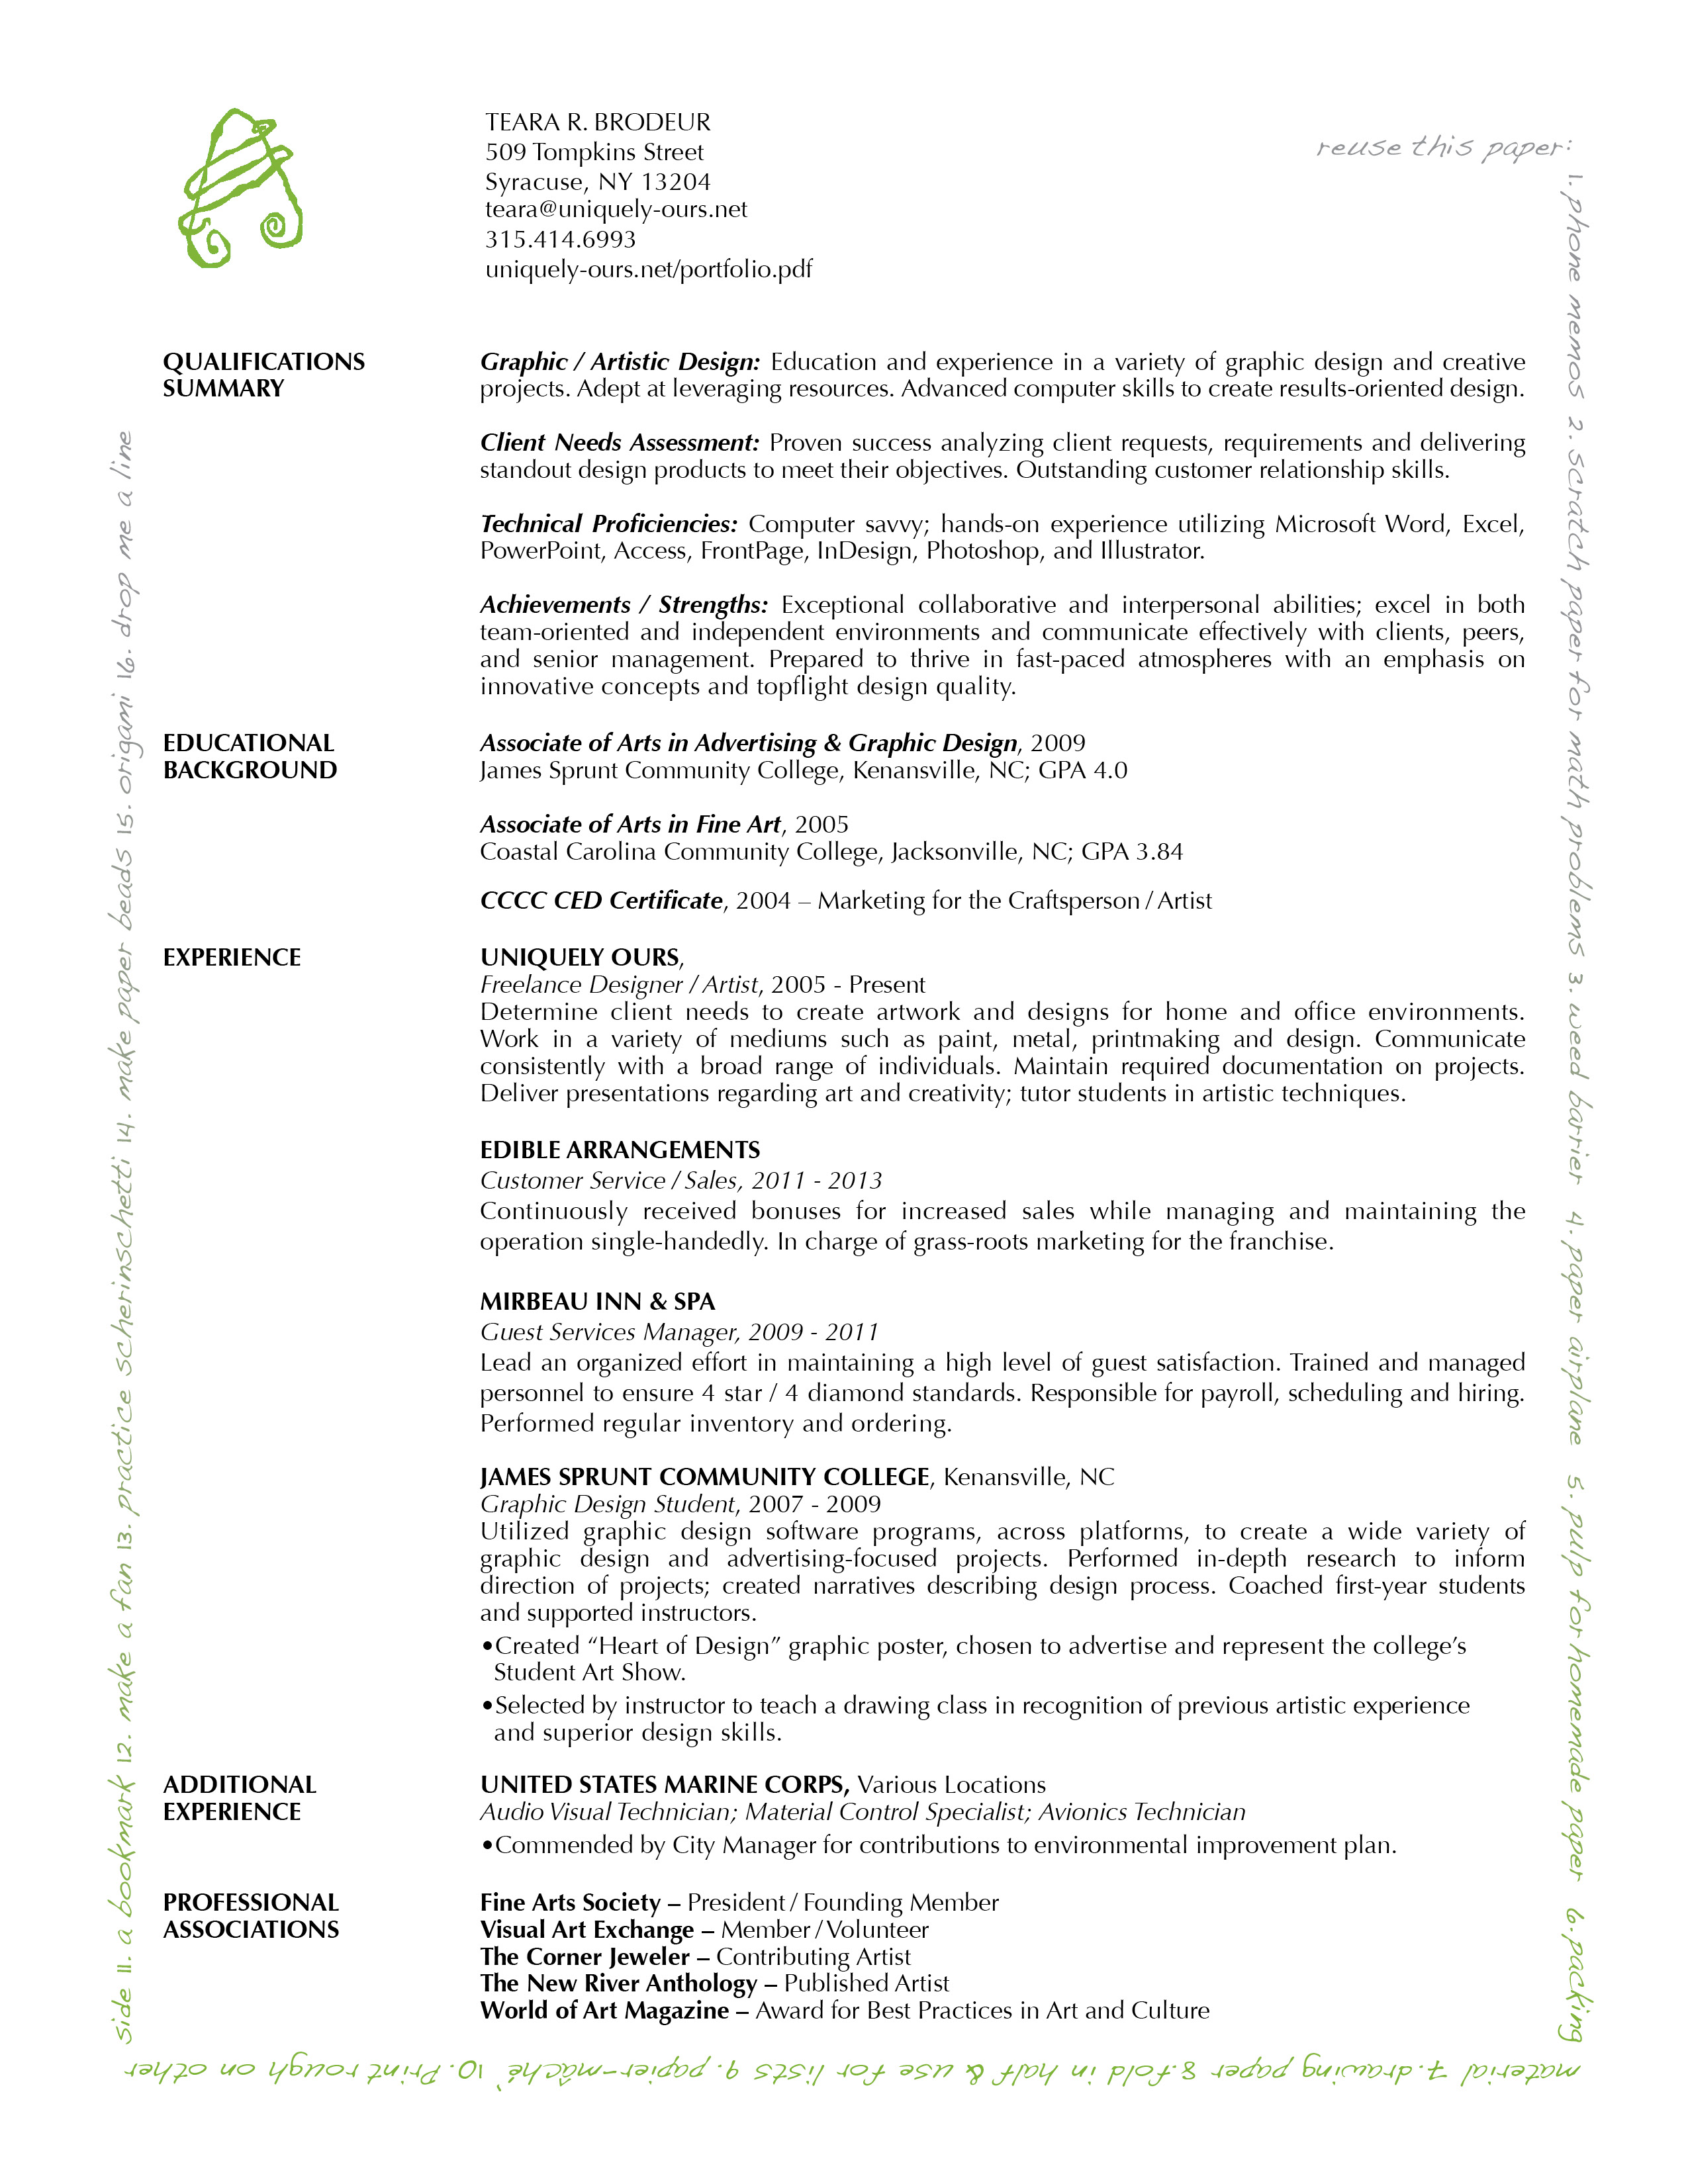 career statement examples